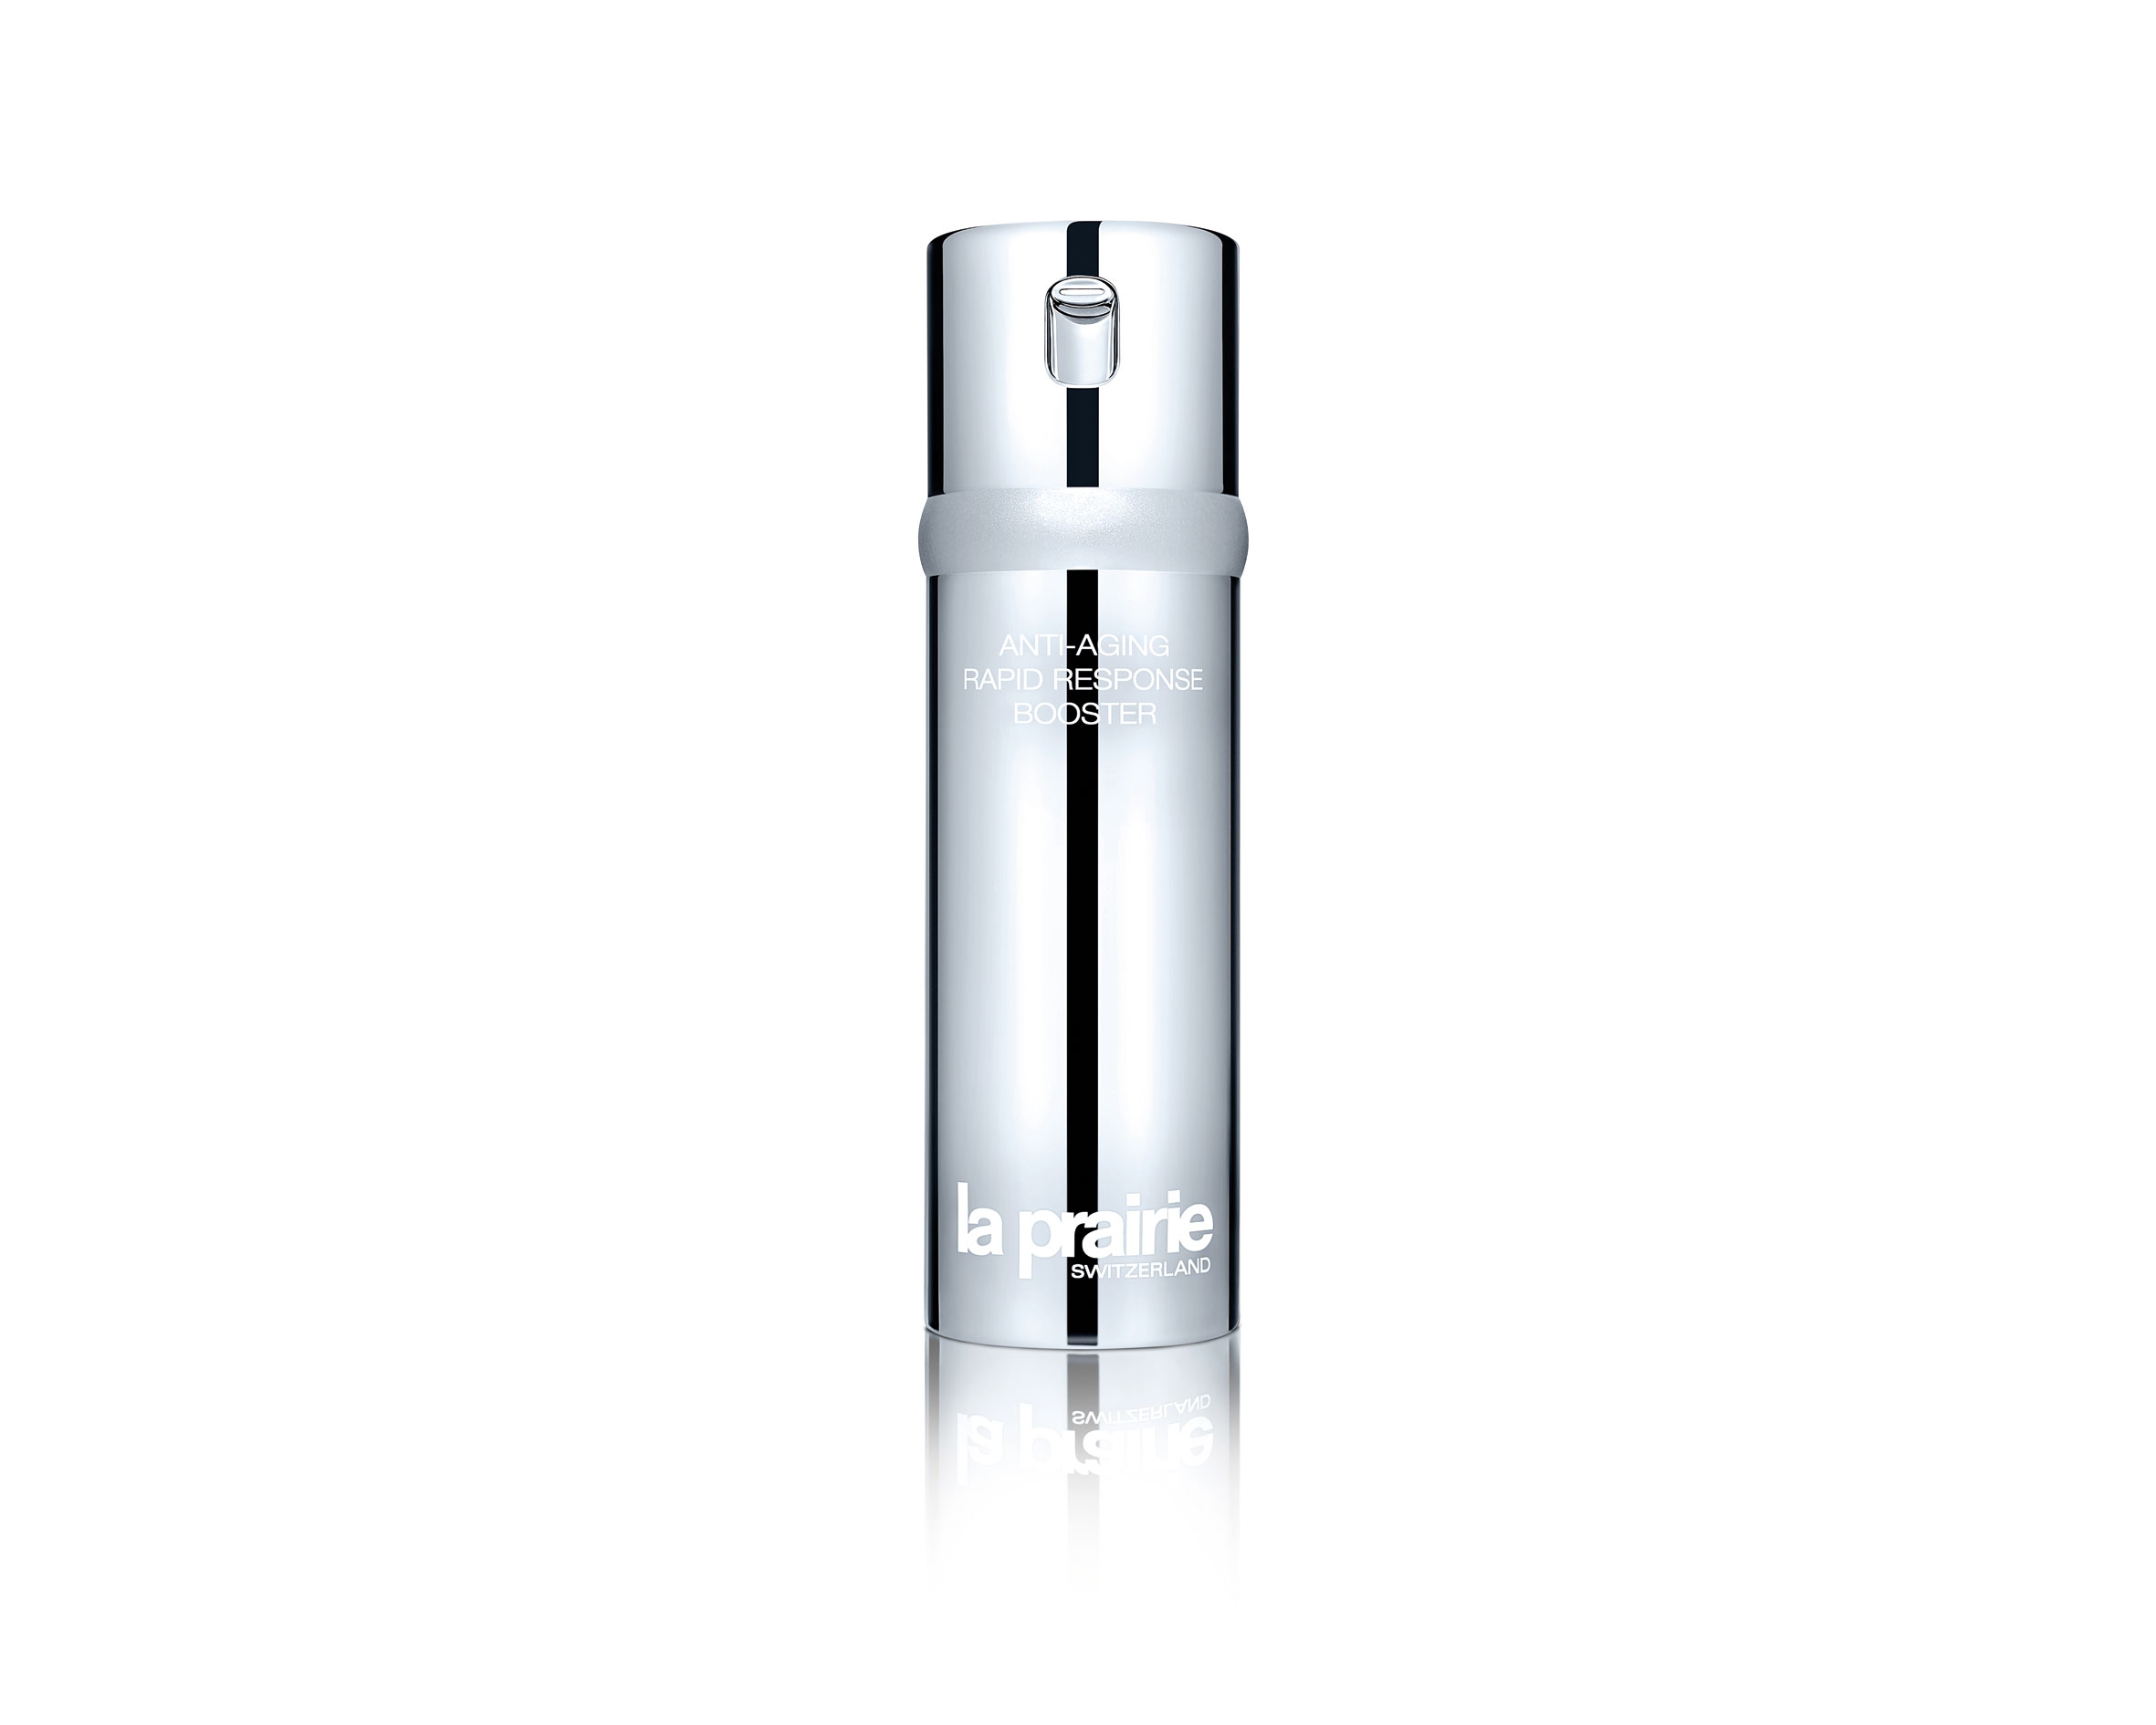 La Prairie Anti-Aging Rapid Response Booster (50 ml, PVPR 249 €).